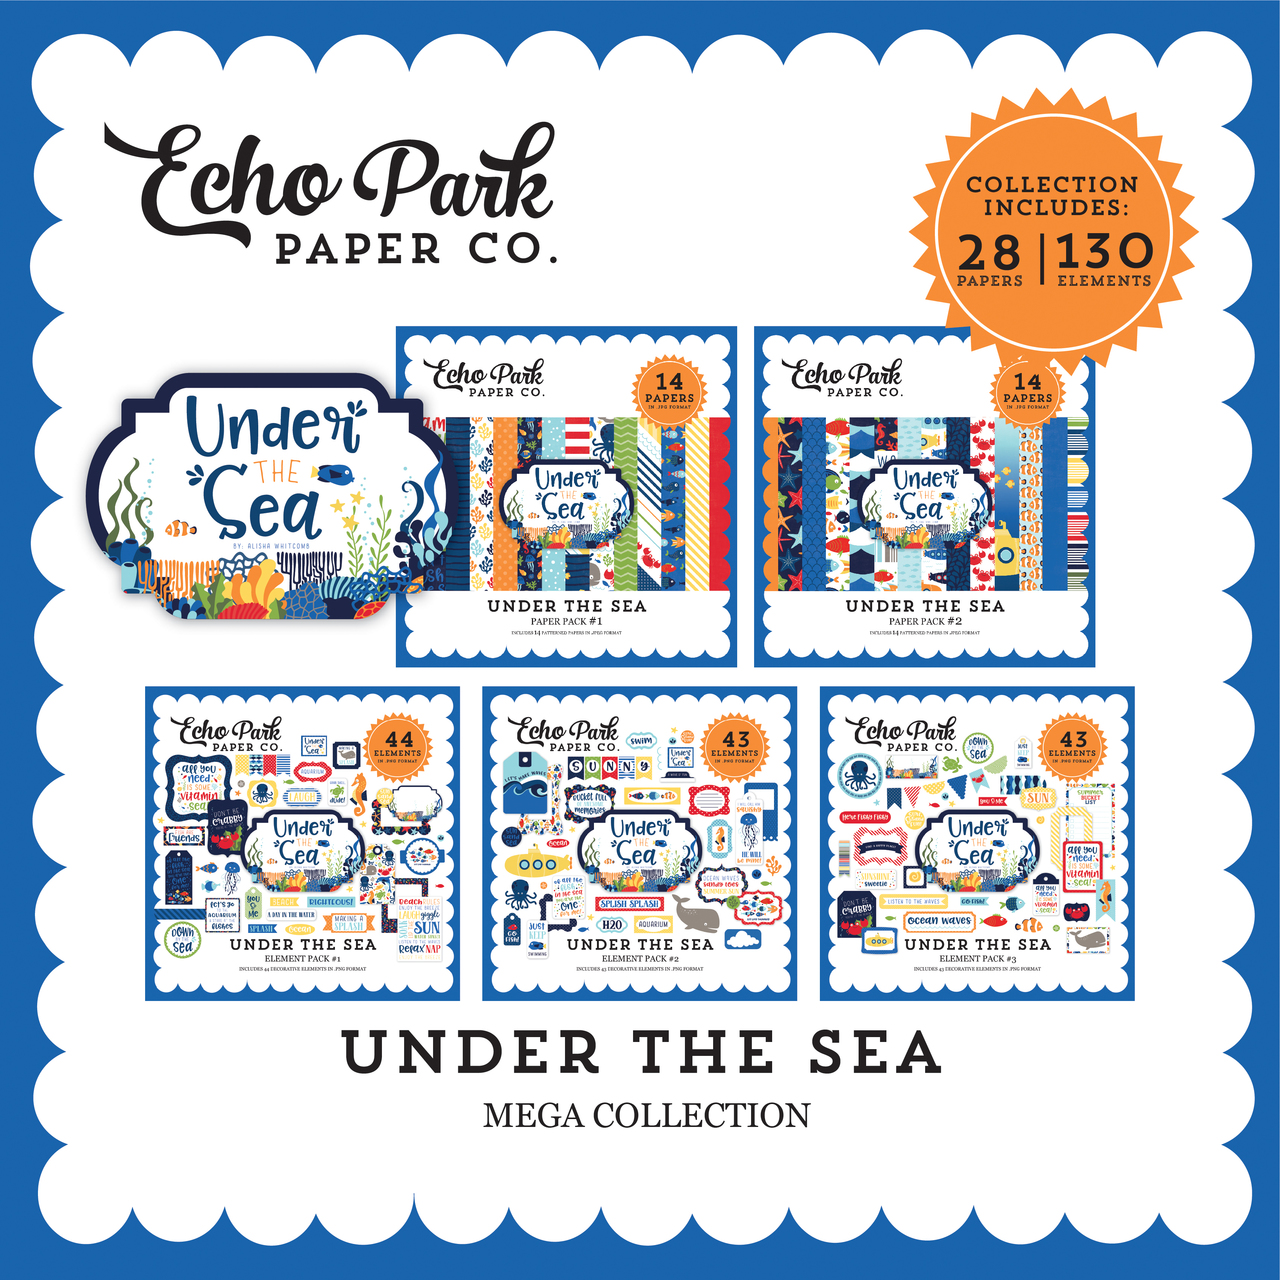 Under the Sea Mega Collection